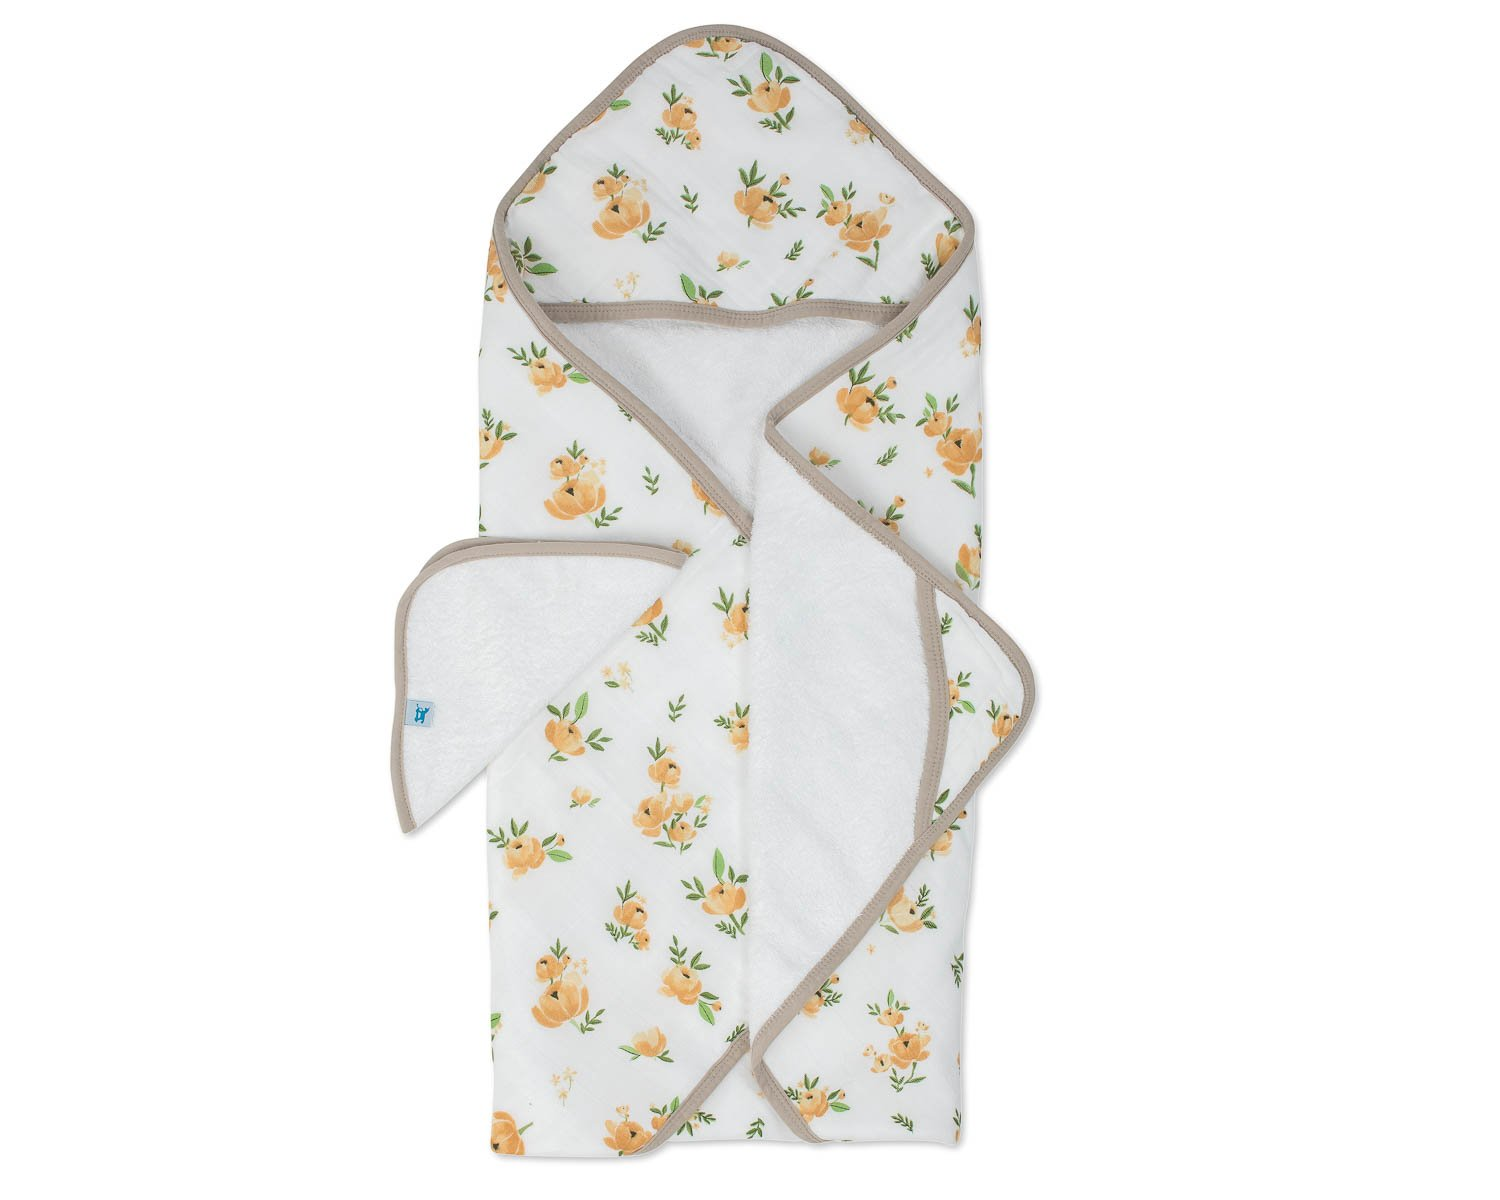 Little Unicorn Cotton Hooded Towel & Wash Cloth - Yellow Rose by Little Unicorn